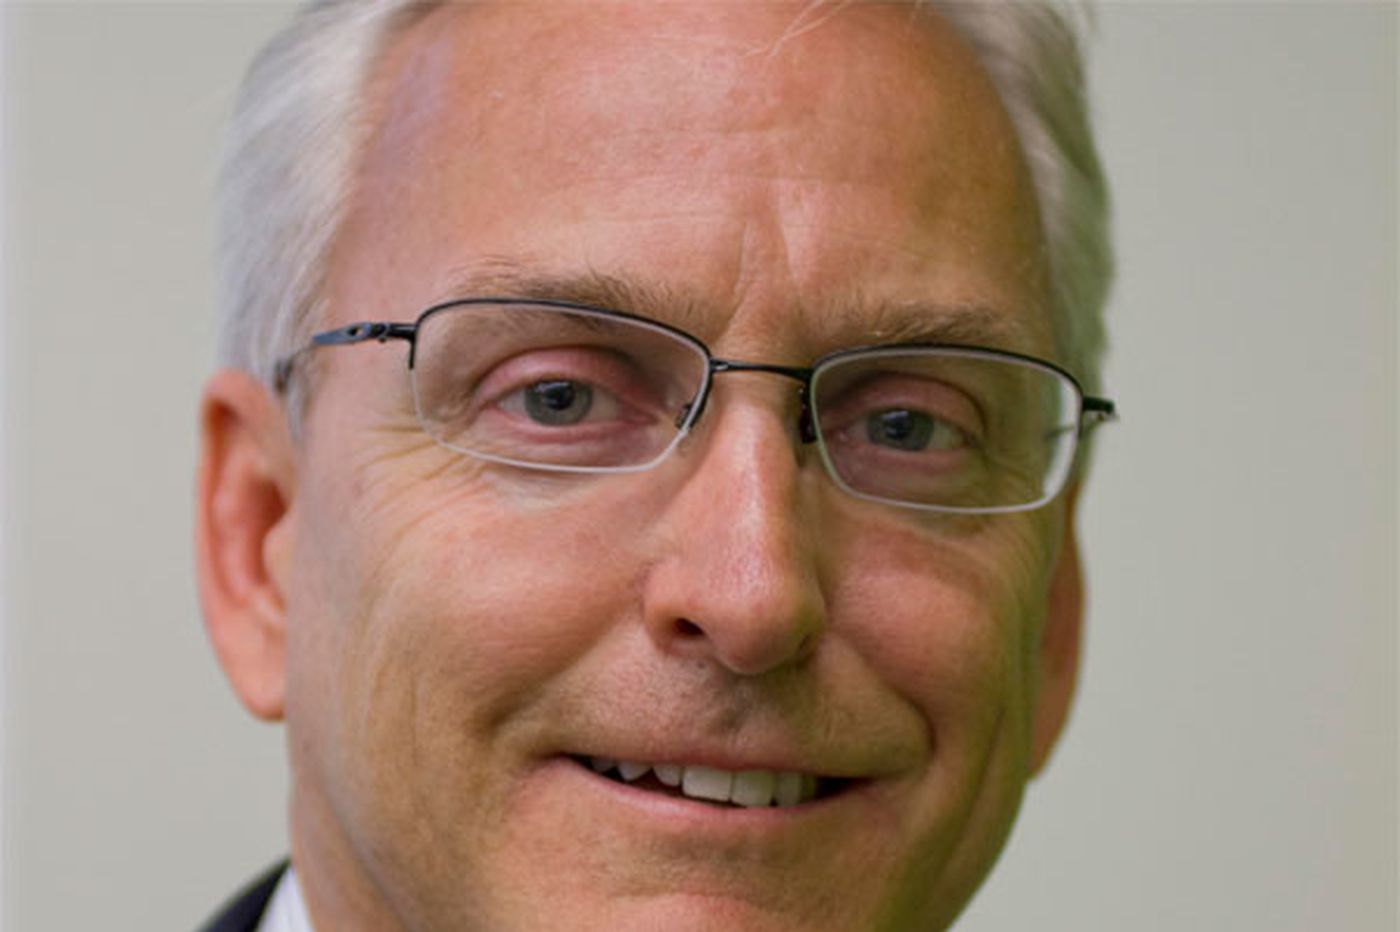 Wischnowski promoted to VP, news operations, at Inquirer parent